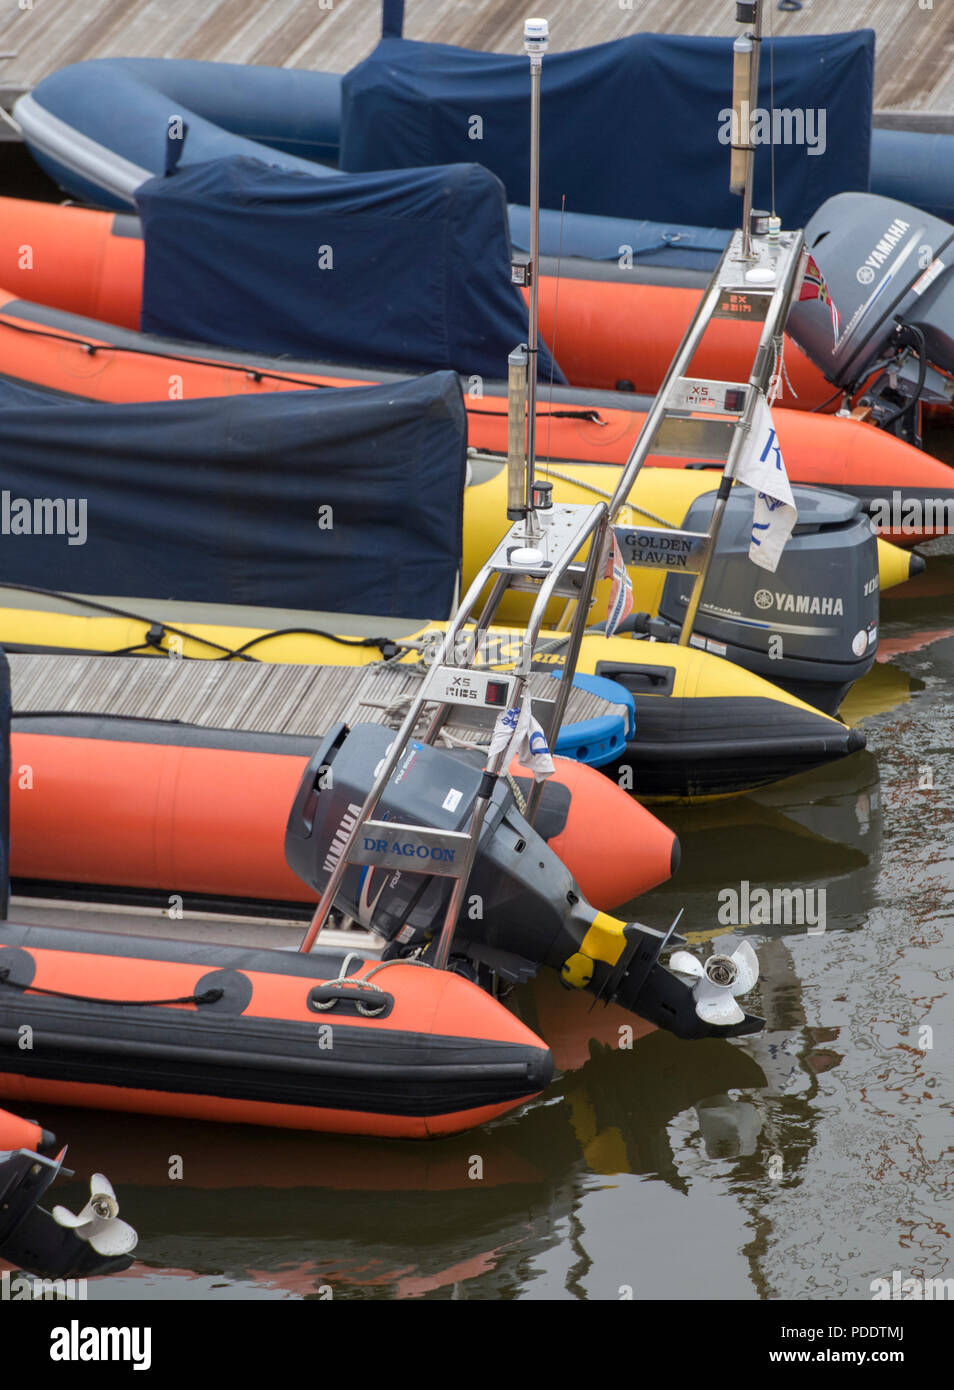 rigid inflatable boats or rib craft moored together in a line nect to each other in a yacht marina or harbour. - Stock Image